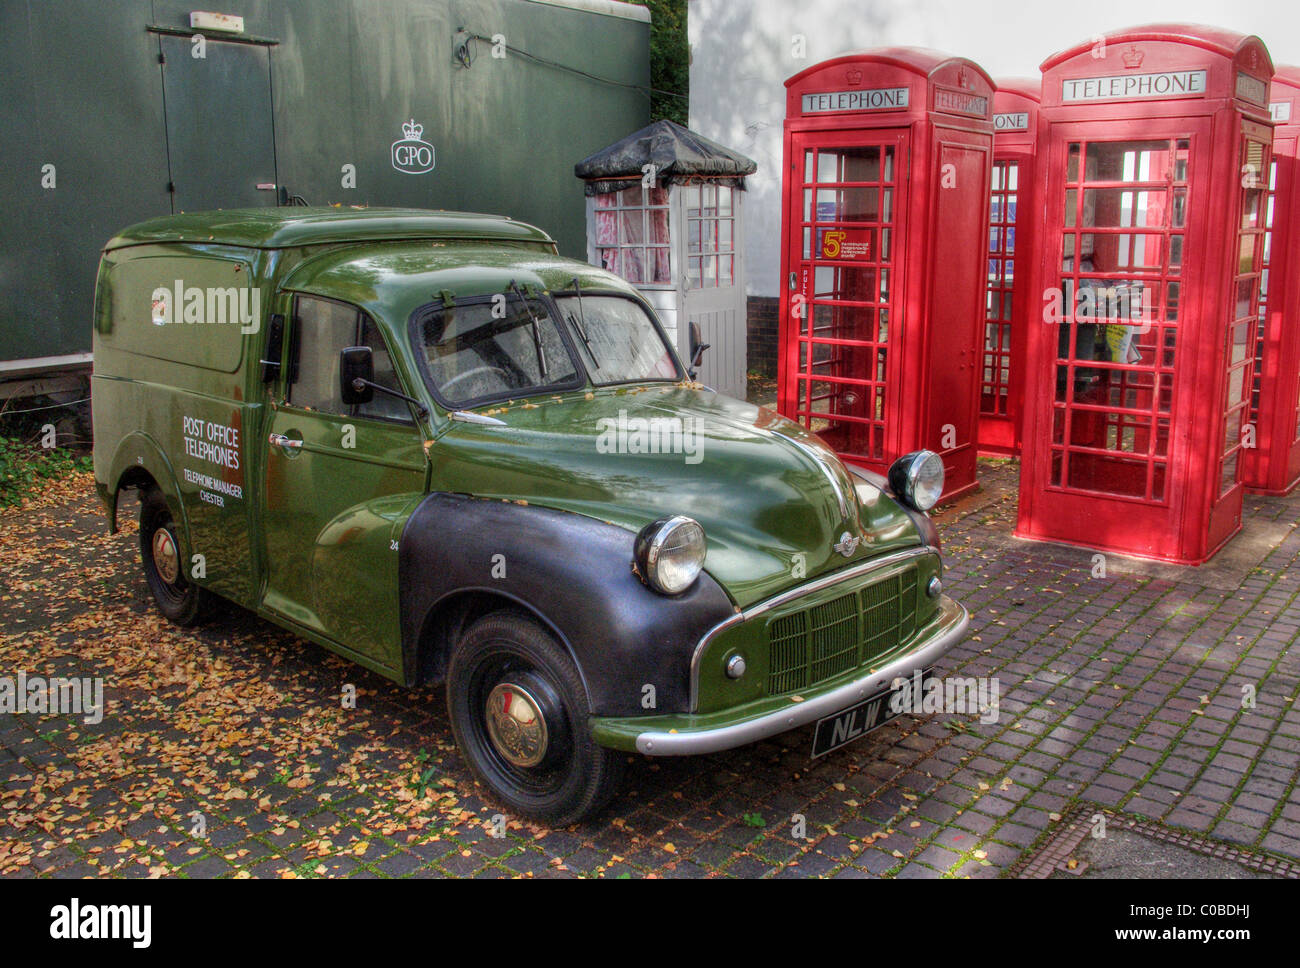 Green GPO van against a backdrop of red phone-boxes at Avoncroft Museum of Historic Buildings - Stock Image